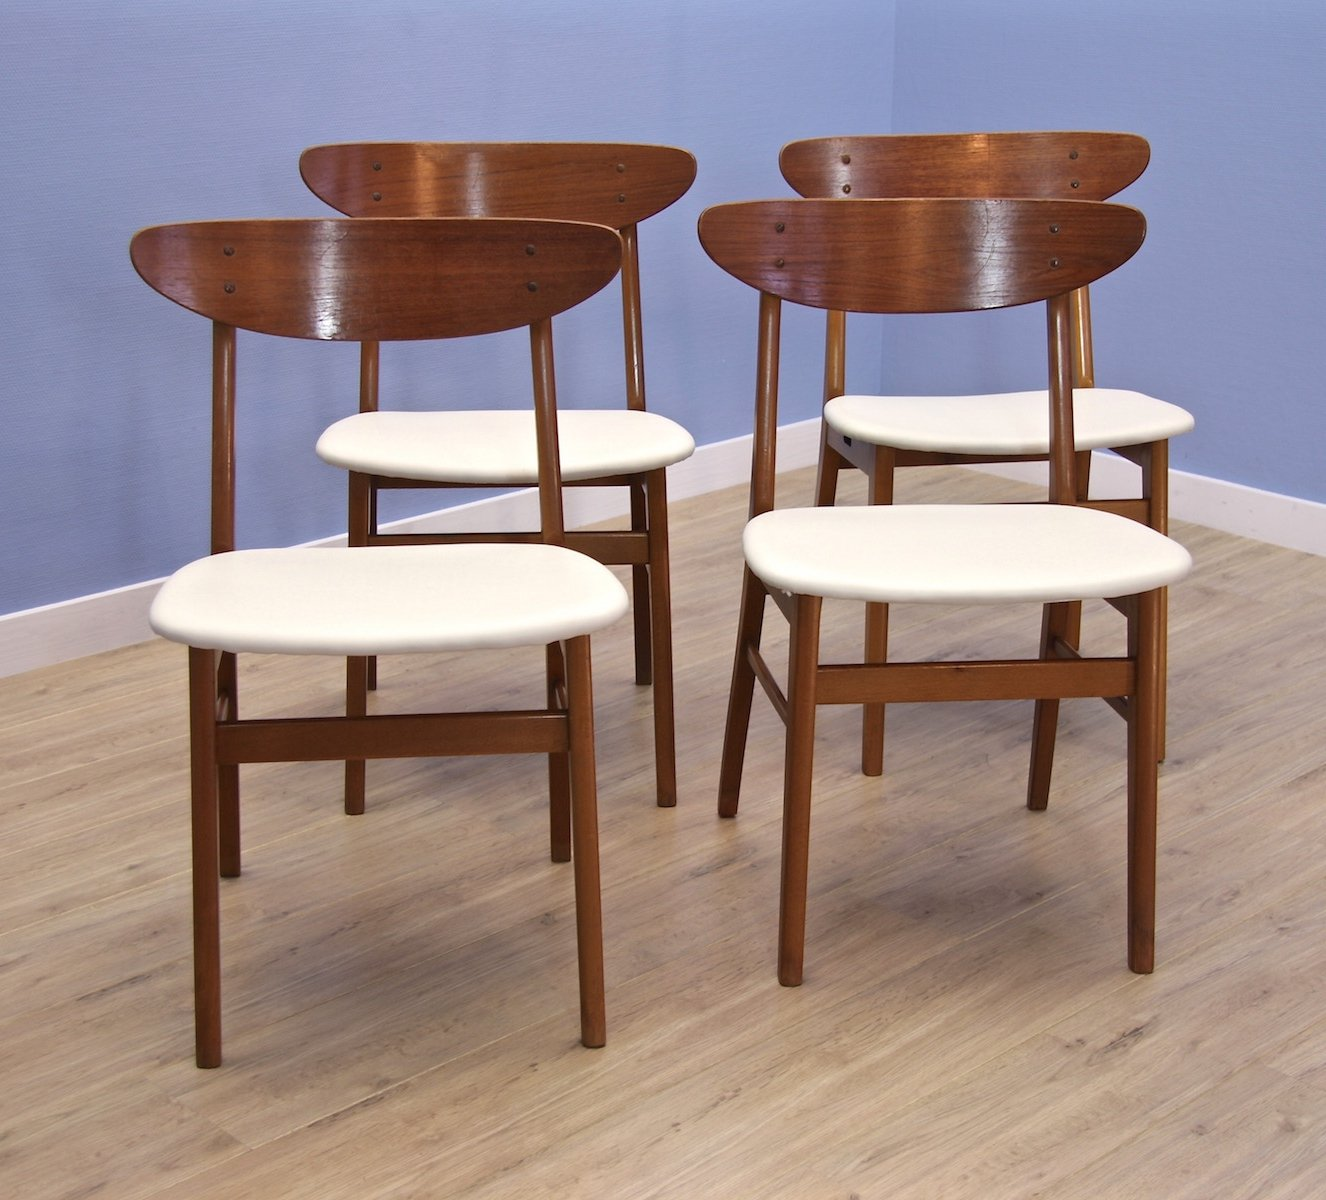 Set of 4 danish dining chairs by farstrup in teak off white leatherette 1960s 88740